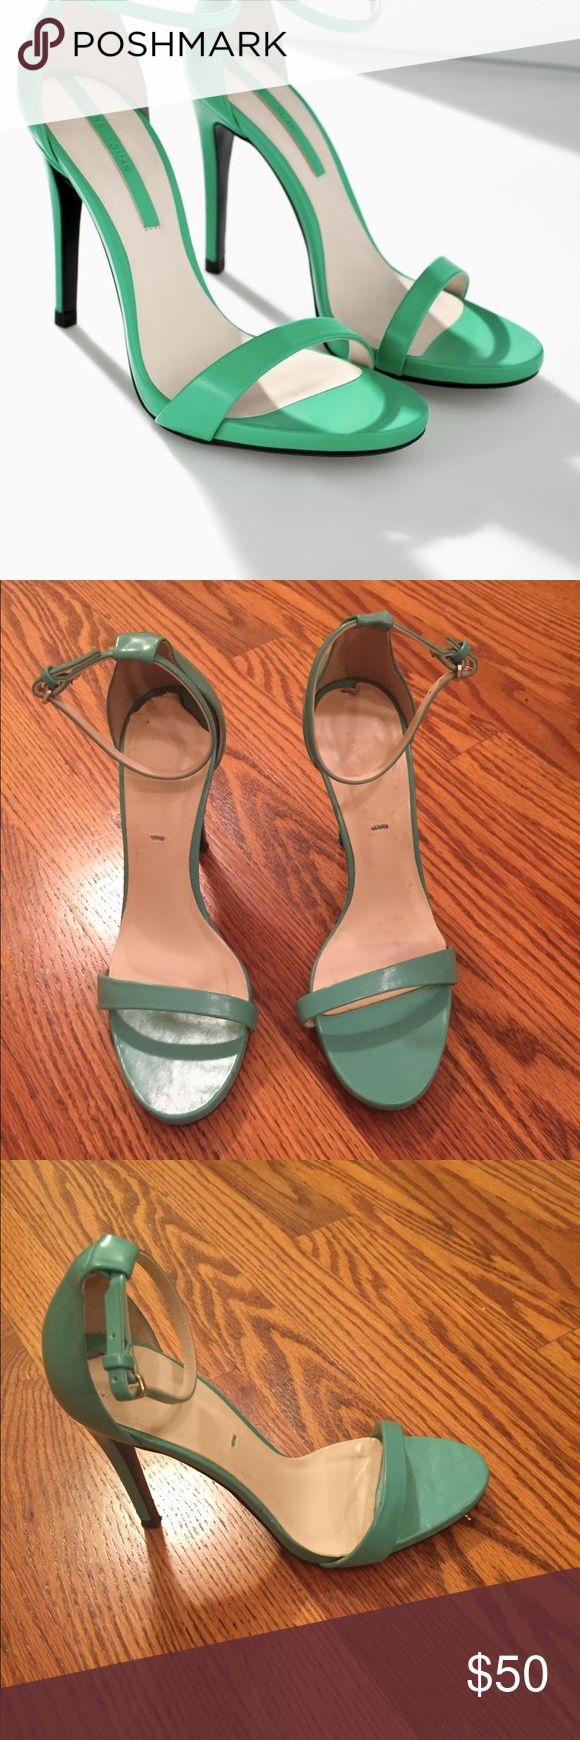 ZARA Women Green Sandals Green t strap heeled sandals. Size 38  Condition: Used Zara Shoes Sandals